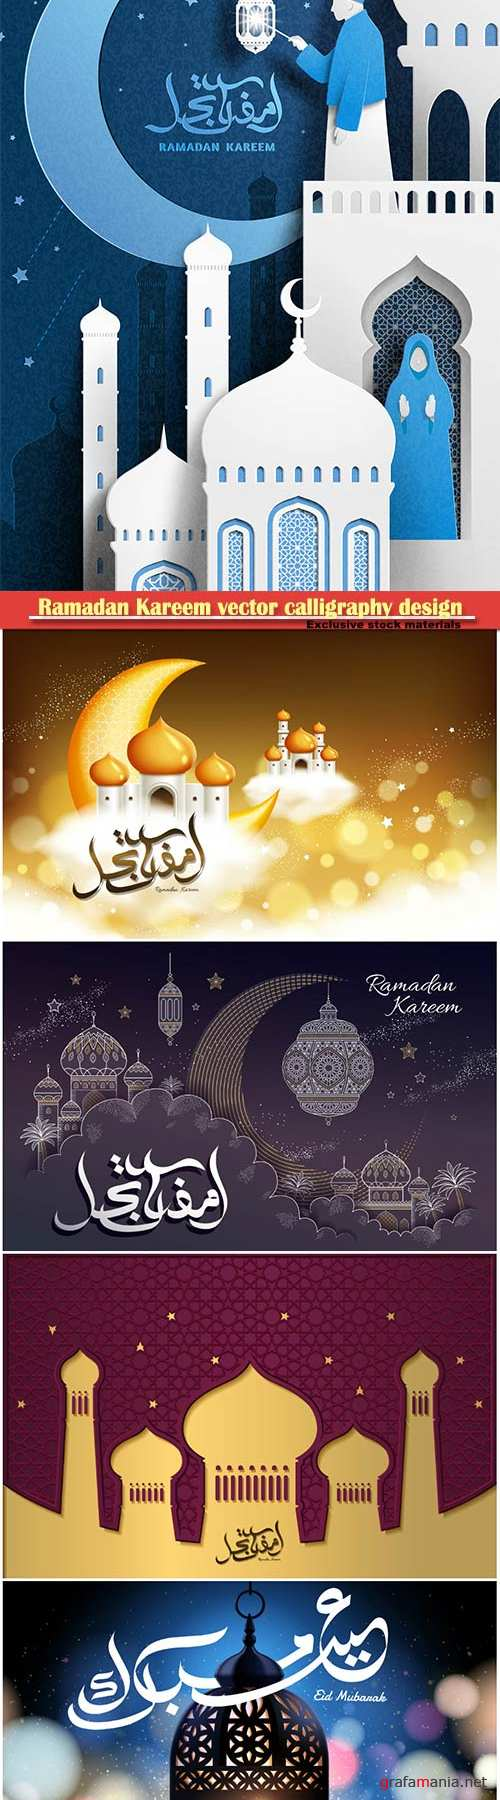 Ramadan Kareem vector calligraphy design with decorative floral pattern,mosque silhouette, crescent and glittering islamic background # 9